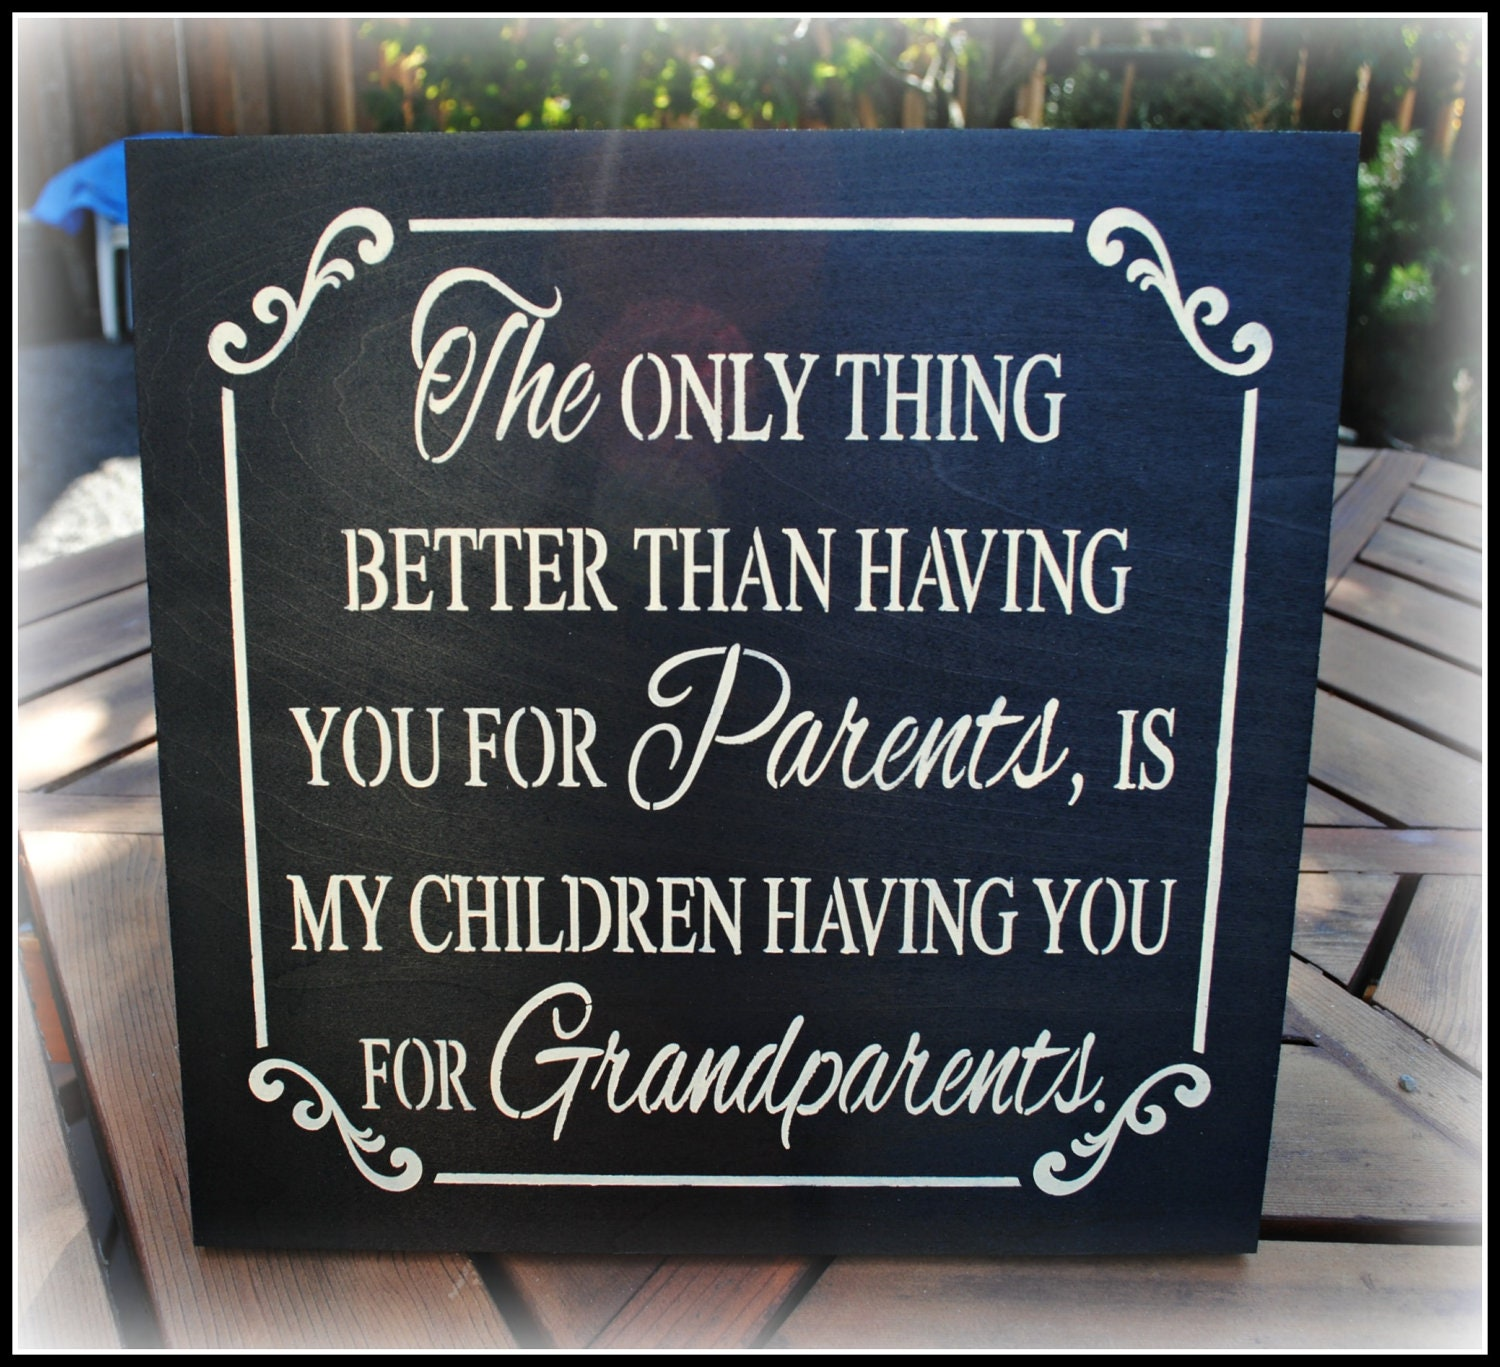 Grandparents Sign. Auto Insurance Quotes Allstate. Identity Access Management System. Turnkey Ecommerce Websites What Is Title Max. Examples Of Window Tint Hazardous Tree Removal. Breach Of Fiduciary Duty Statute Of Limitations. B A Business Management 4x6 Postcard Printing. Secondary Health Insurance Coverage. Whole Life Insurance Means Panic At The Diso